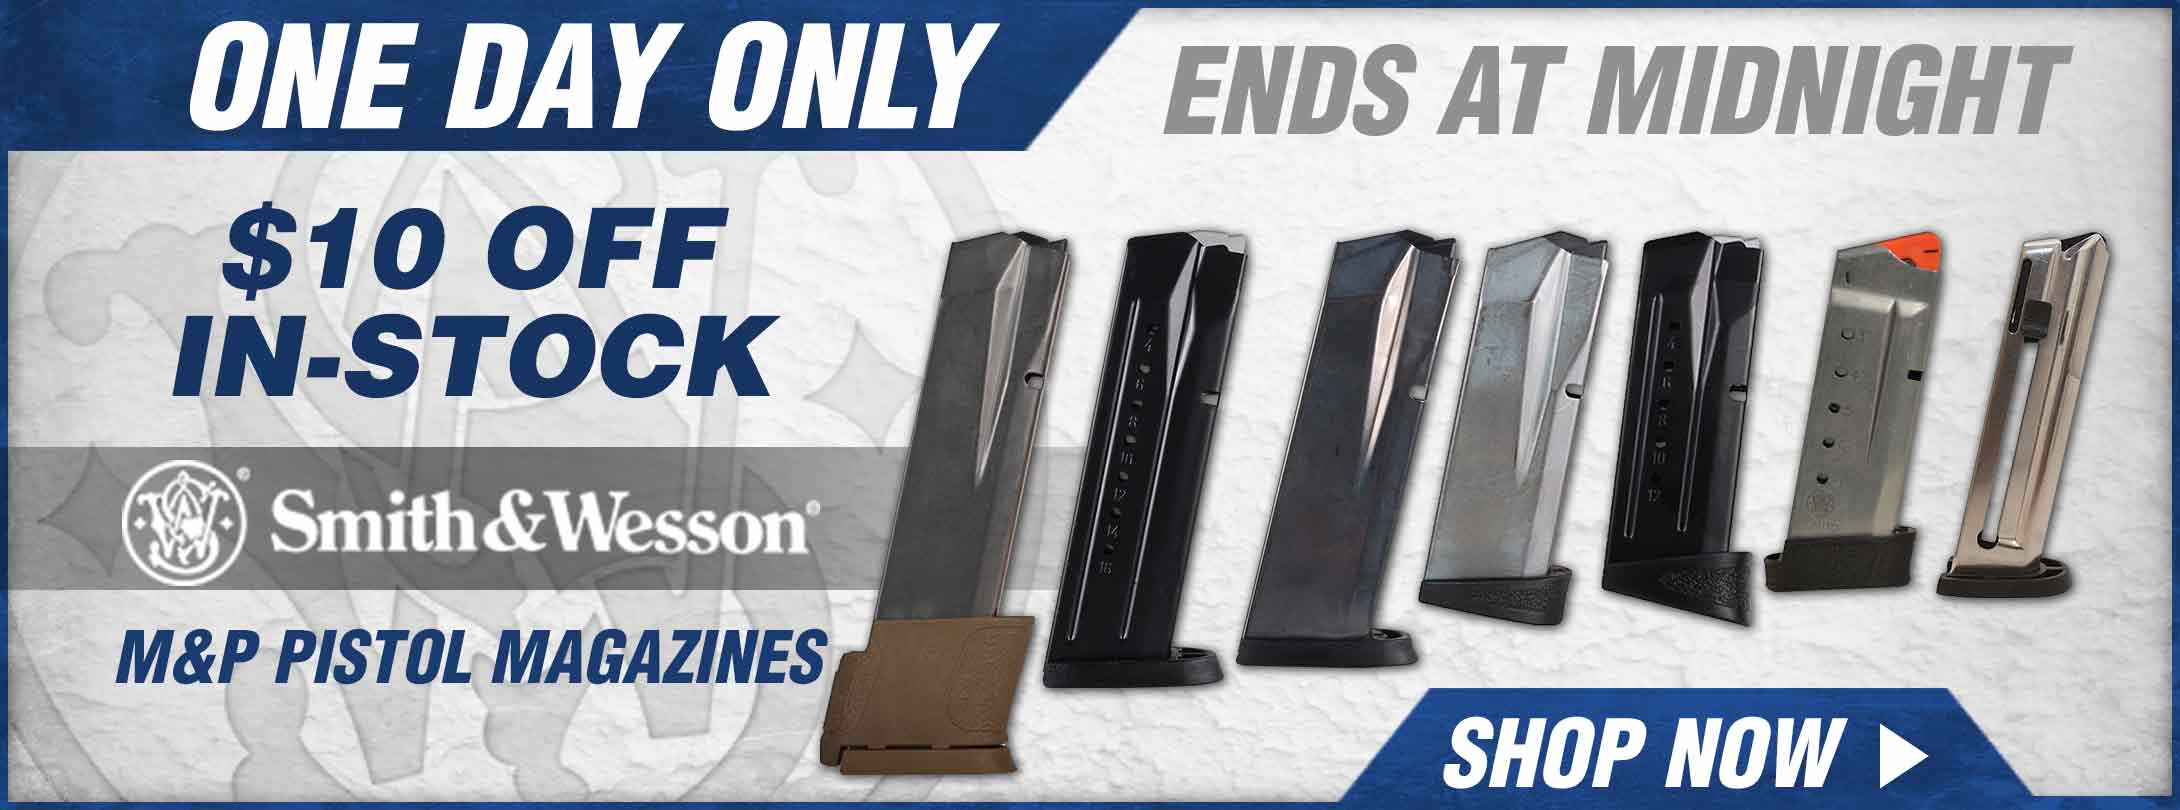 Save on Smith & Wesson M&P Magazines